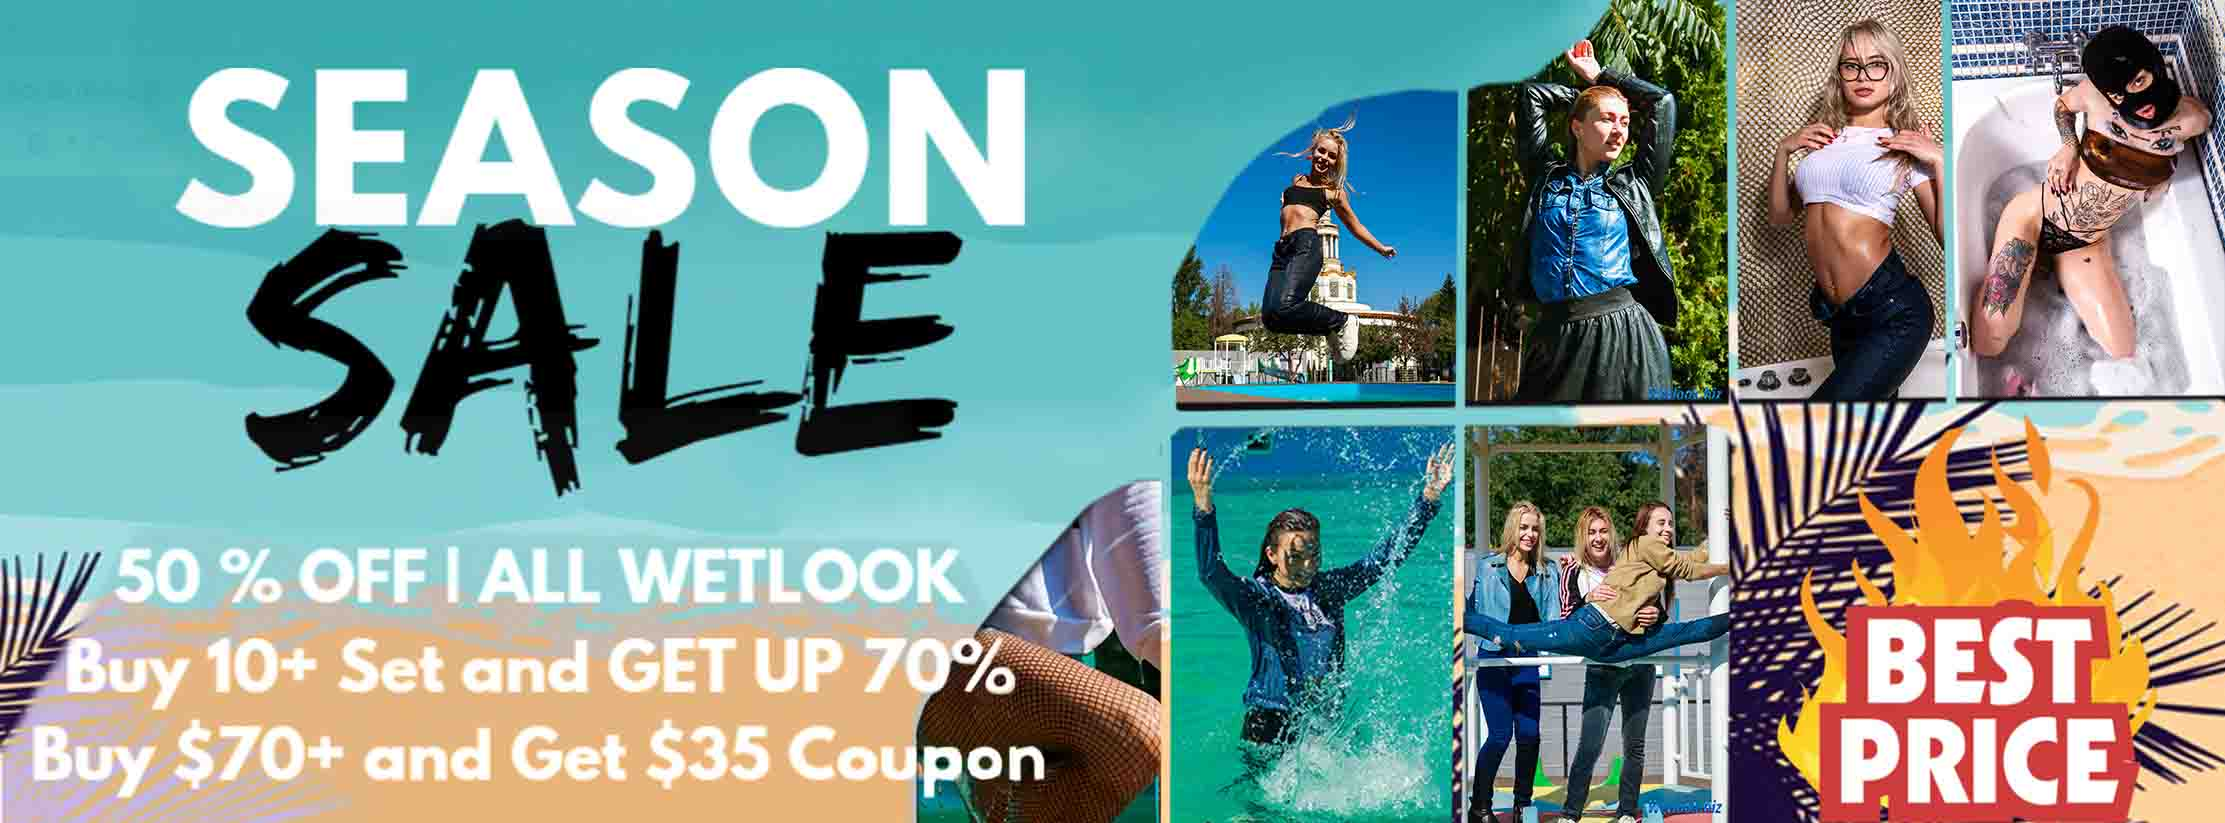 Wetlook season sale - wetlook.biz